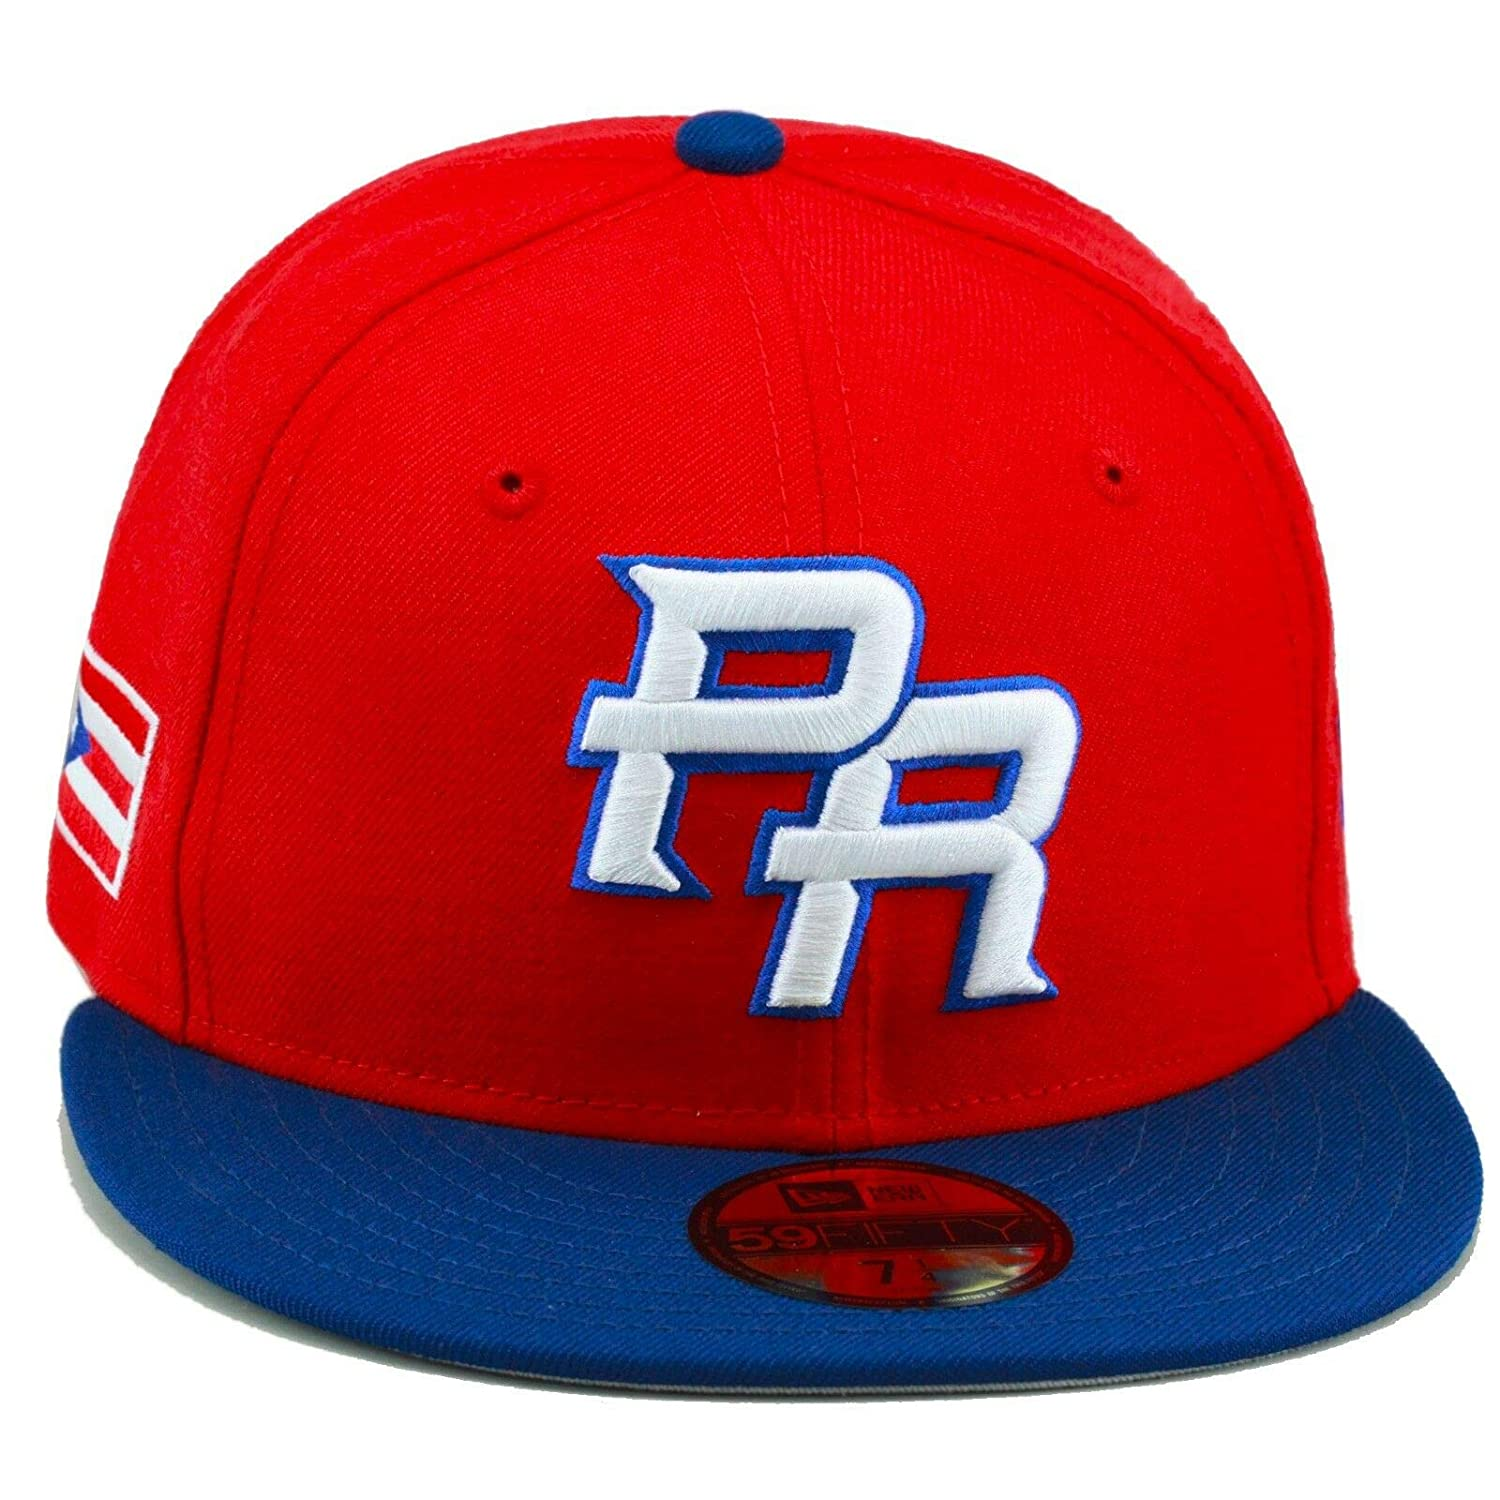 5217c1cfd New Era 59FIFTY 2013 WBC PR Fitted Hat Cap Red/Royal/Puerto Rico Flag